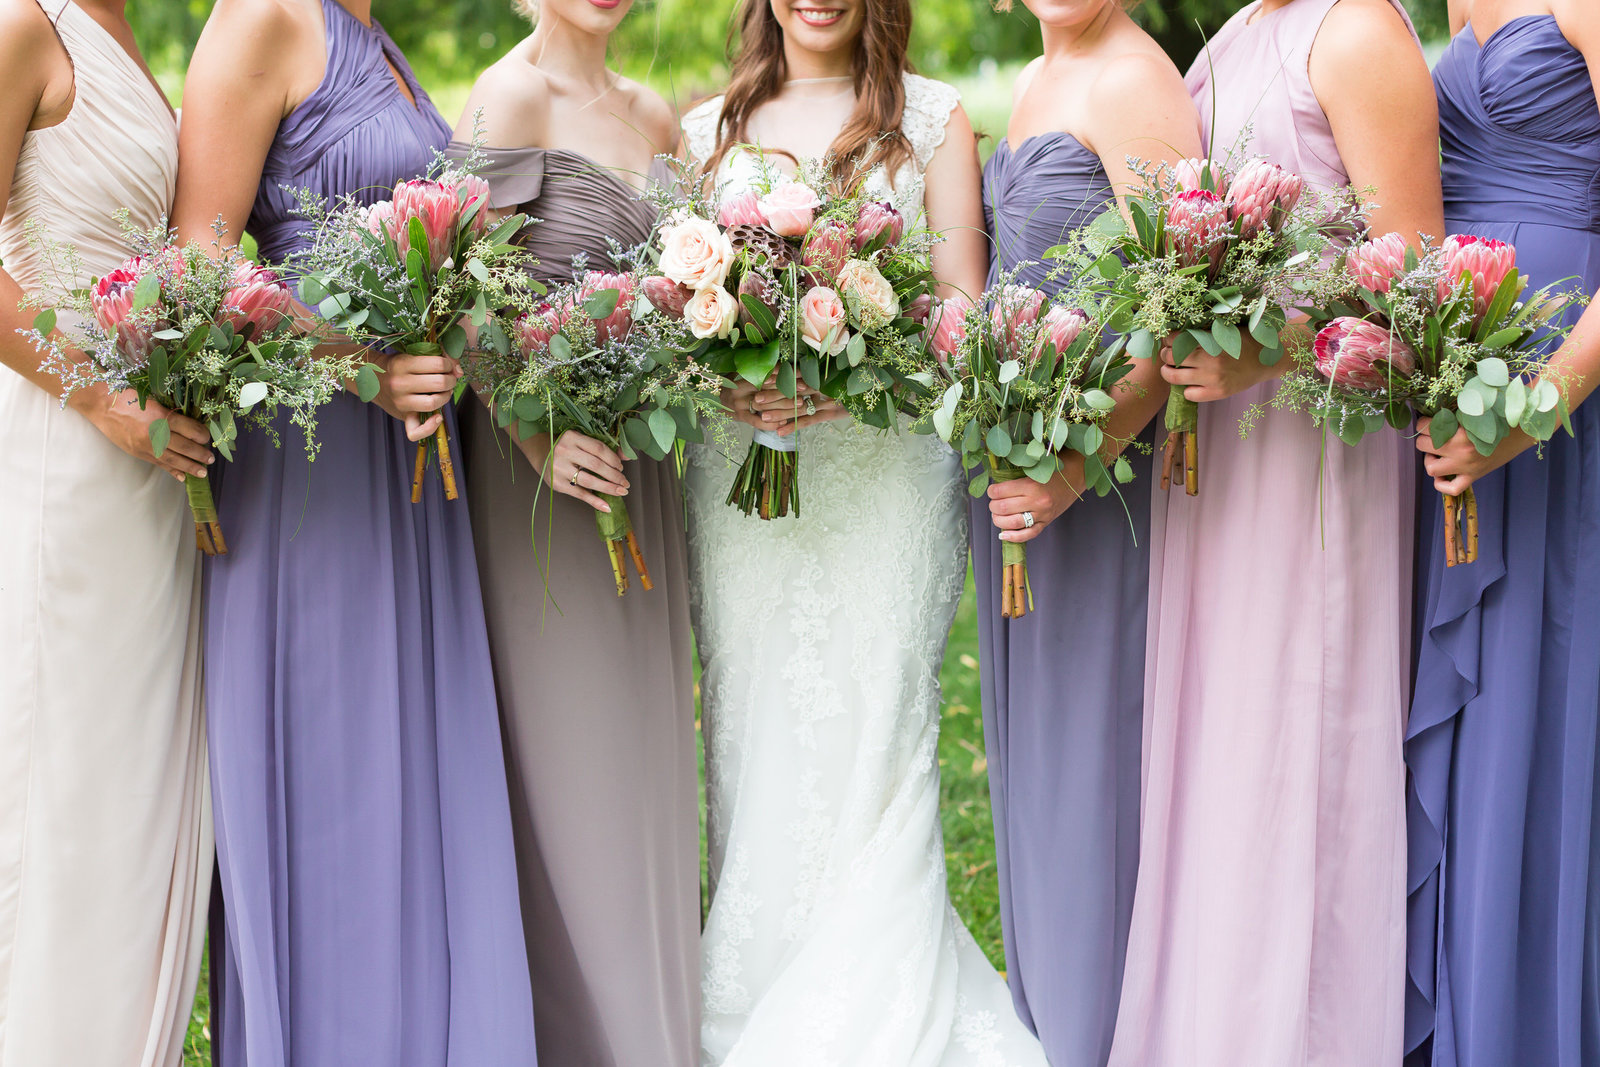 Maison Meredith Photography Wisconsin Wedding Photographer 060